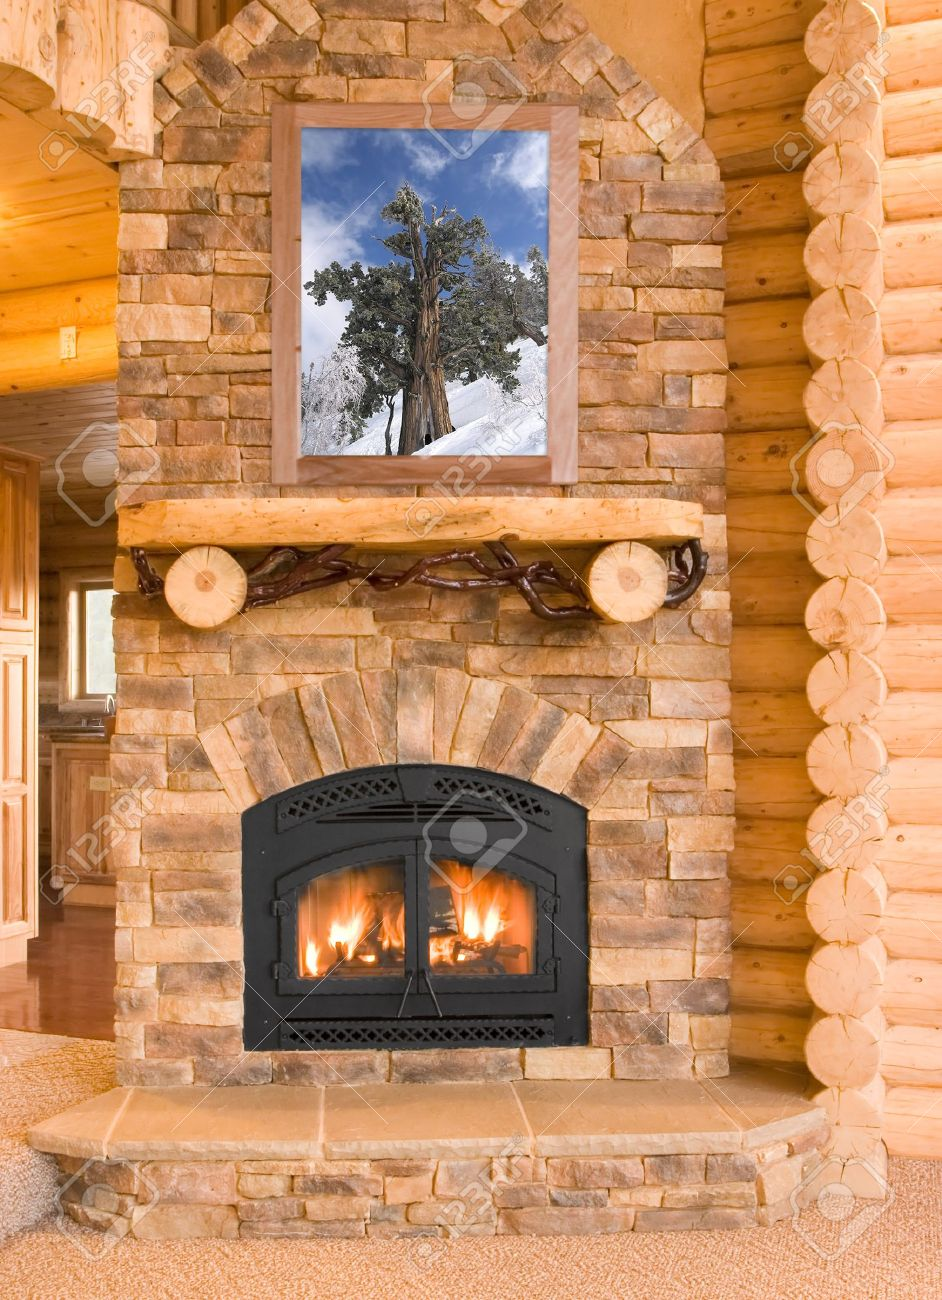 Log Cabin Home Interior With Warm Fireplace With Wood, Flames ... on log cabin fireplace screens, log cabin fireplace mantels, log cabin electric fireplaces, log cabin fireplace tools, log cabin rock fireplaces, log cabin fireplace designs,